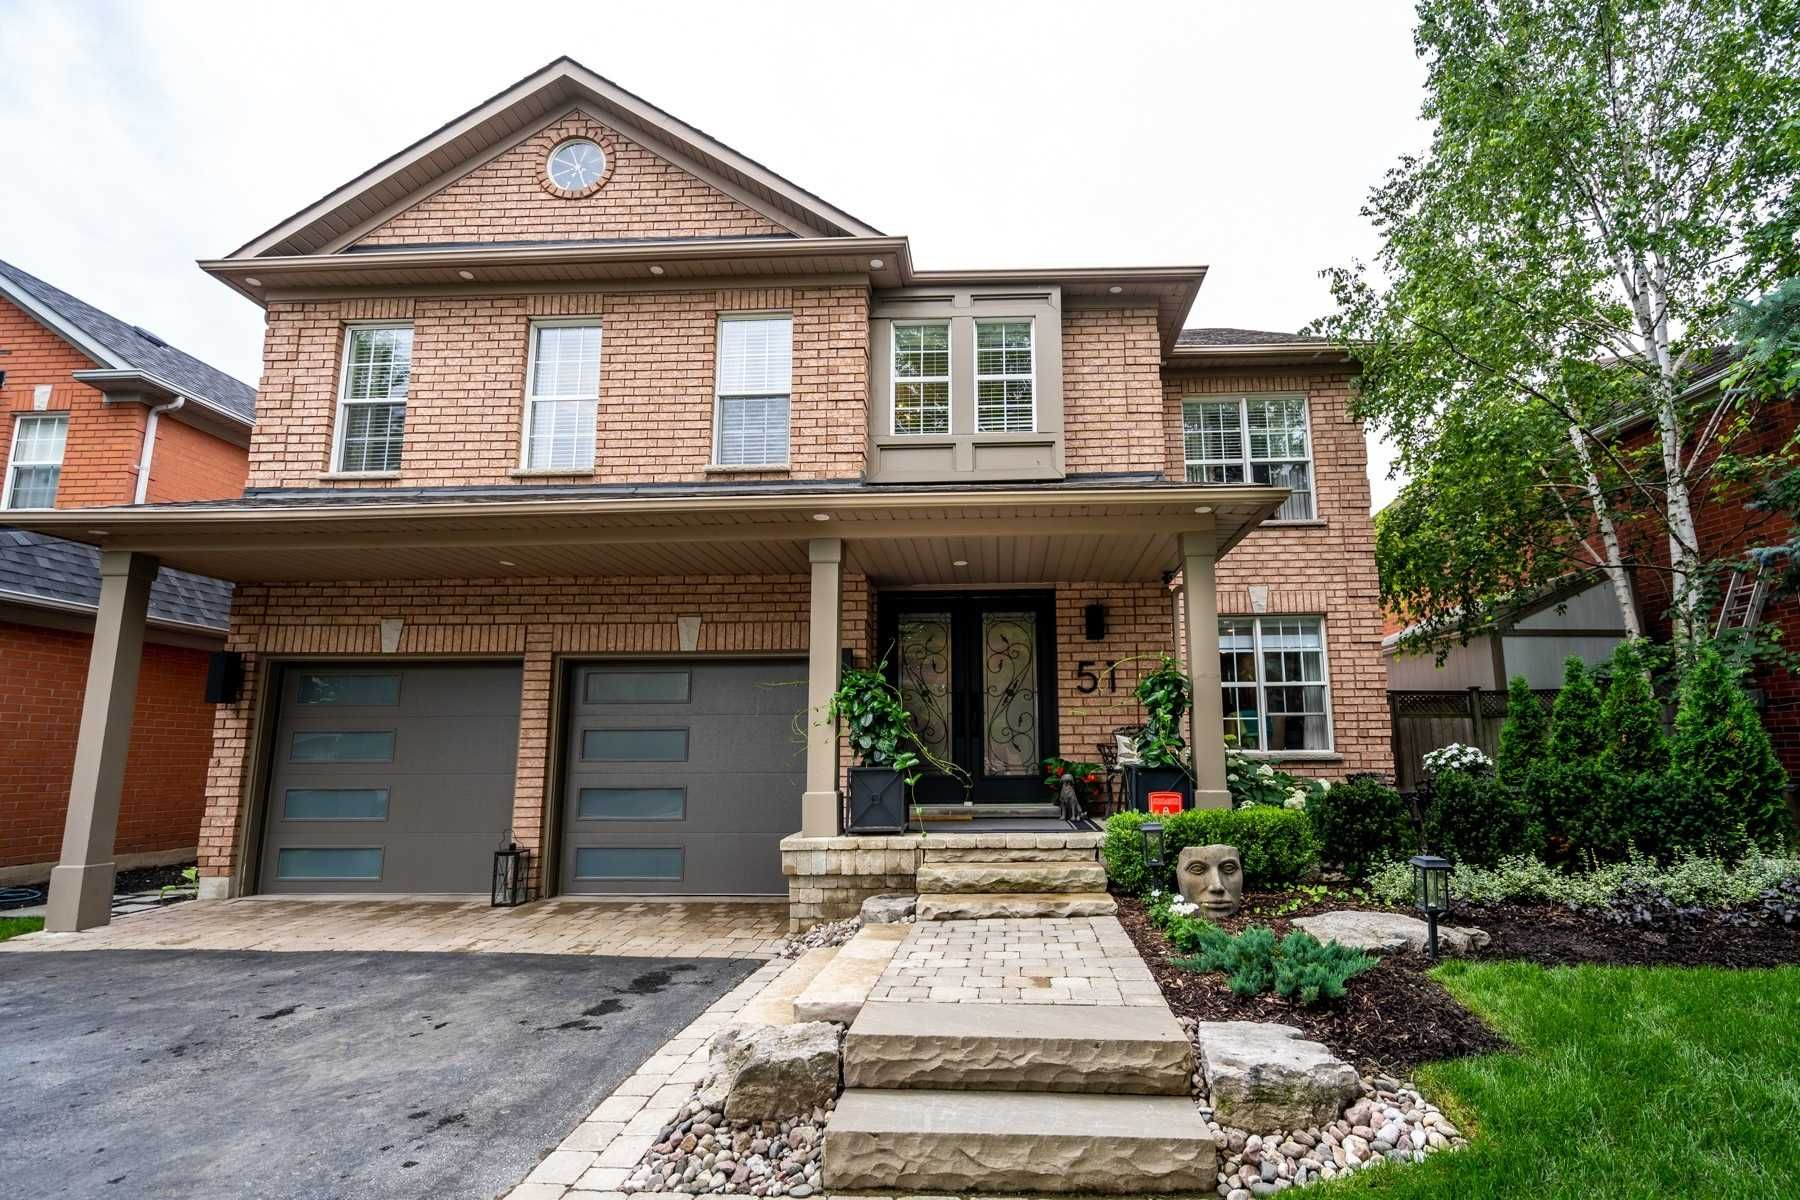 Main Photo: 51 Gartshore Drive in Whitby: Williamsburg House (2-Storey) for sale : MLS®# E5306981